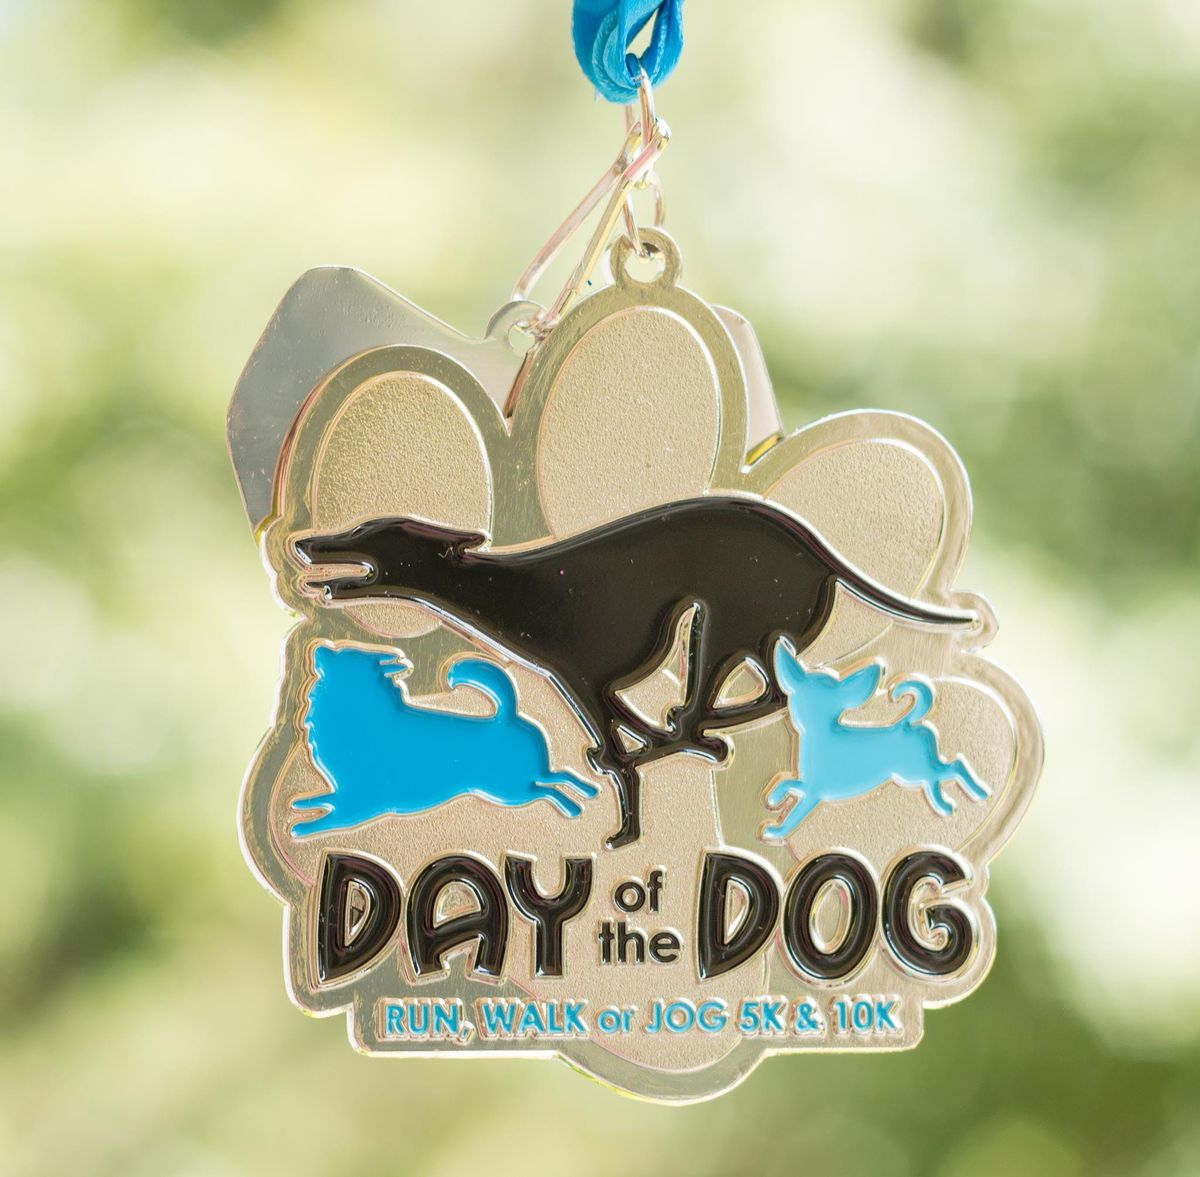 Now Only 14 Day of the Dog Run Walk or Jog 5K & 10K -Austin